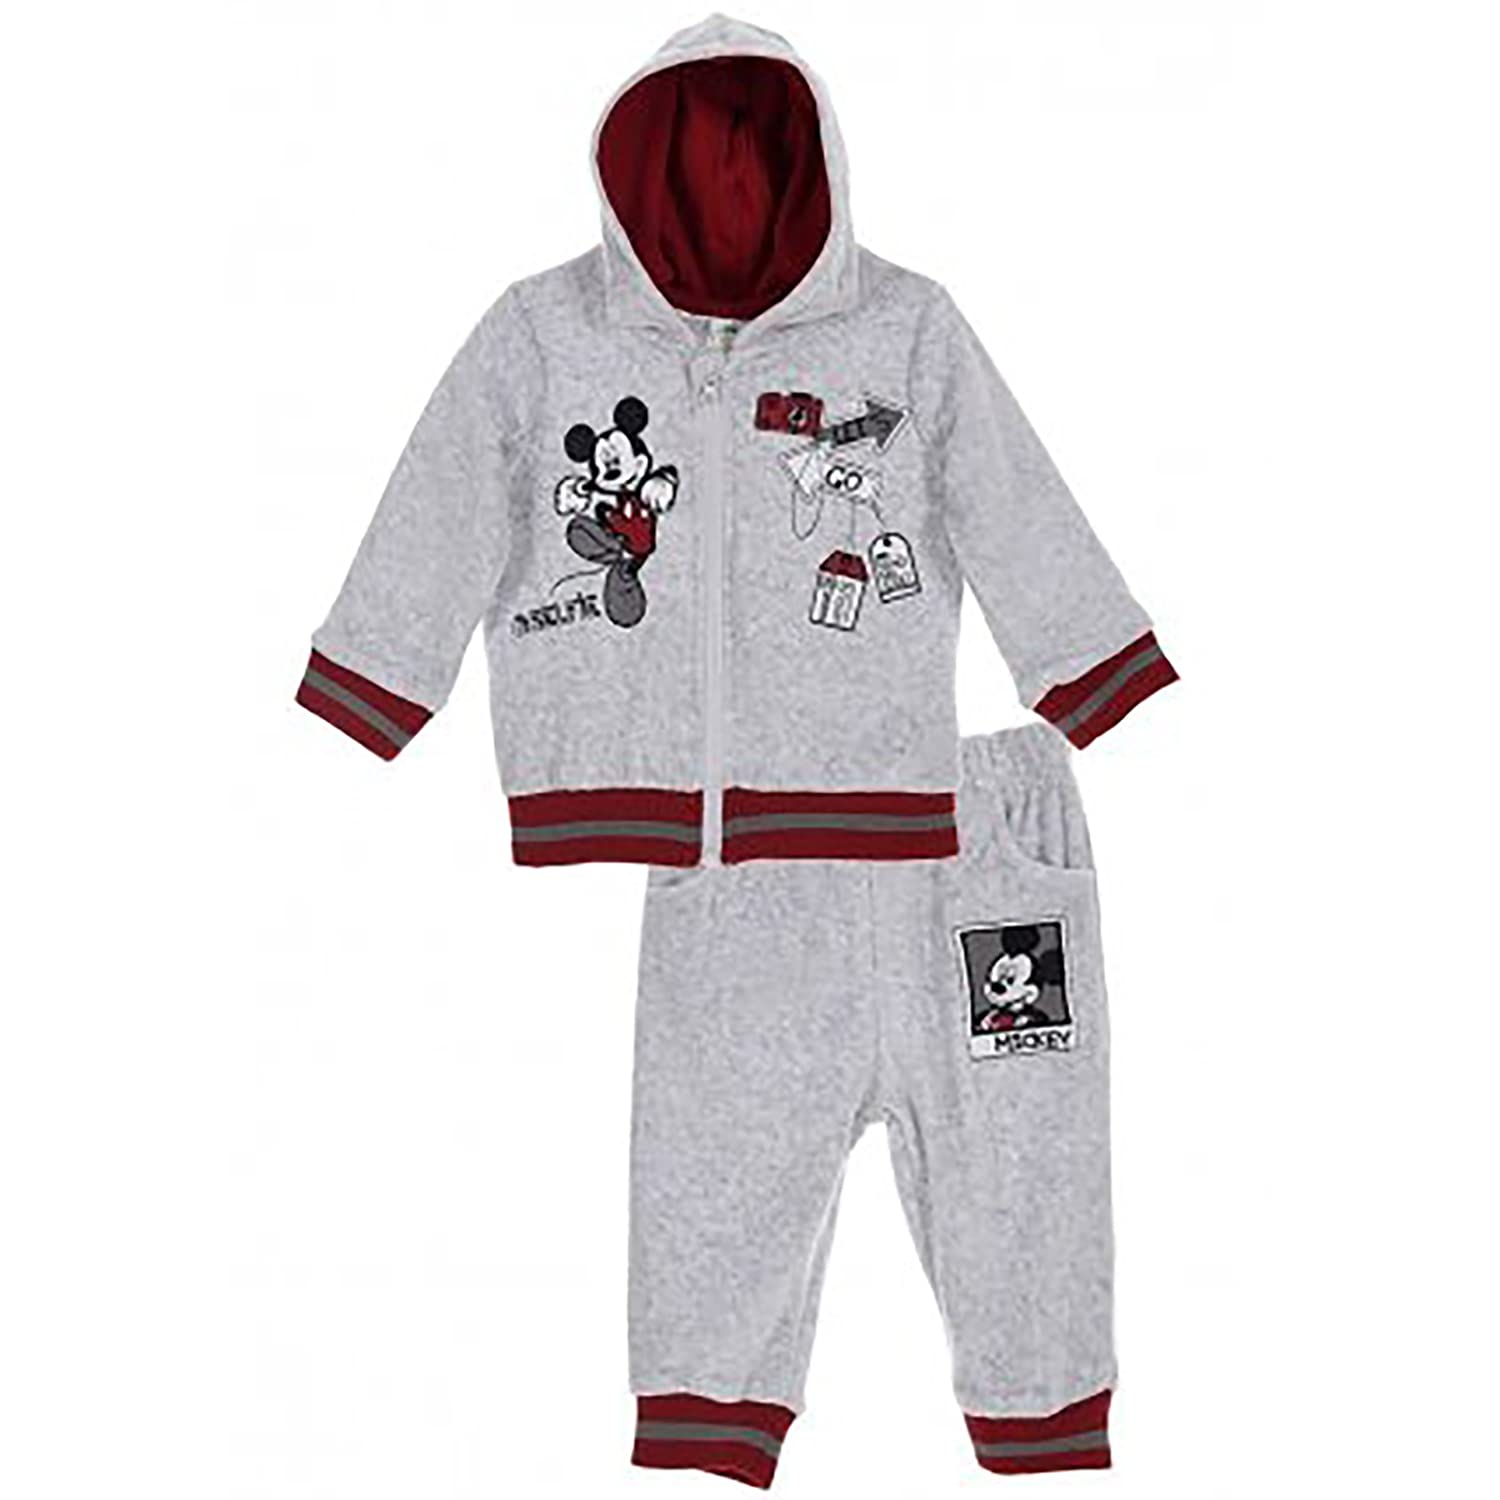 Disney Mickey Mouse Baby Boys Clothing Outfit Tracksuit Set Joggers Hoodie Warm Velvet 0-24 Months - New 2017/18